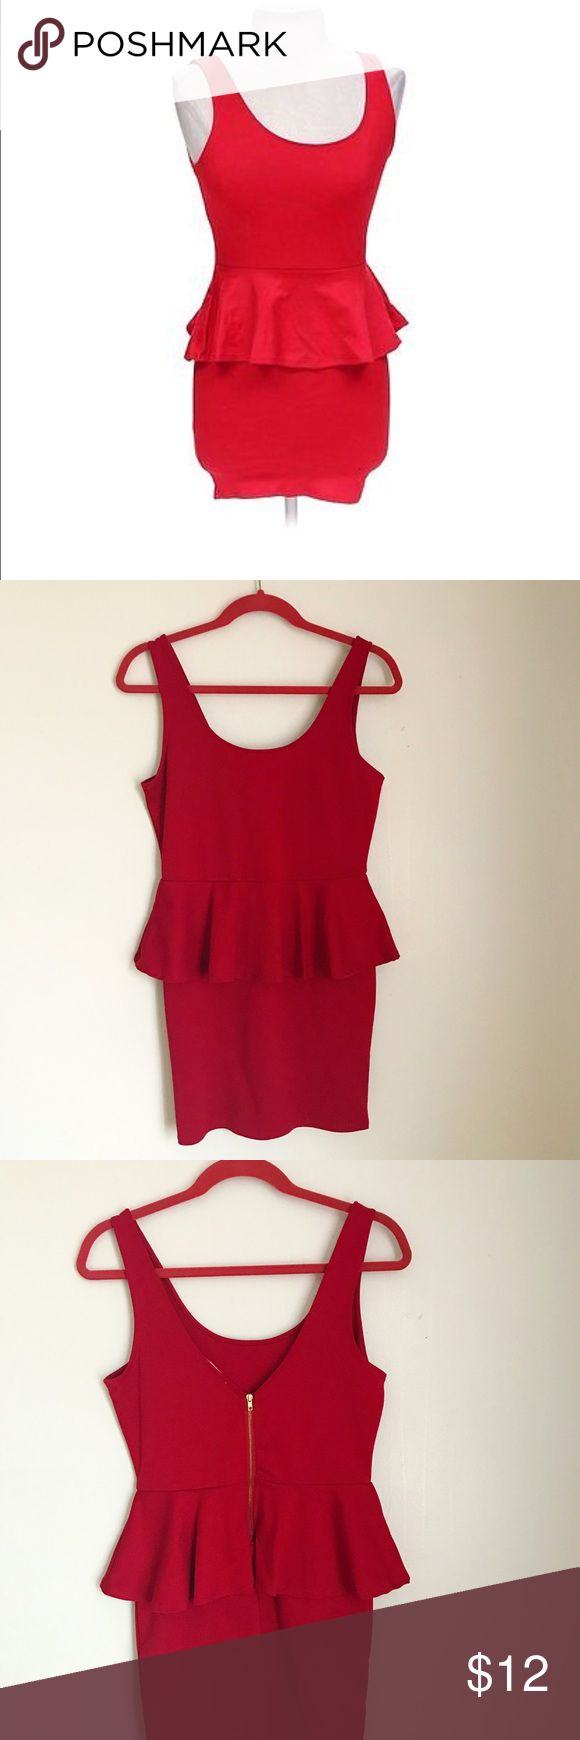 Juicy red peplum dress. Juicy red Ambiance apparel peplum bodycon dress with exposed gold zipper closing in the back. Stretchy material and very flattering on any figure. Size:L. Overall good condition apart from minor stain as shown in picture. Ambiance Dresses Mini